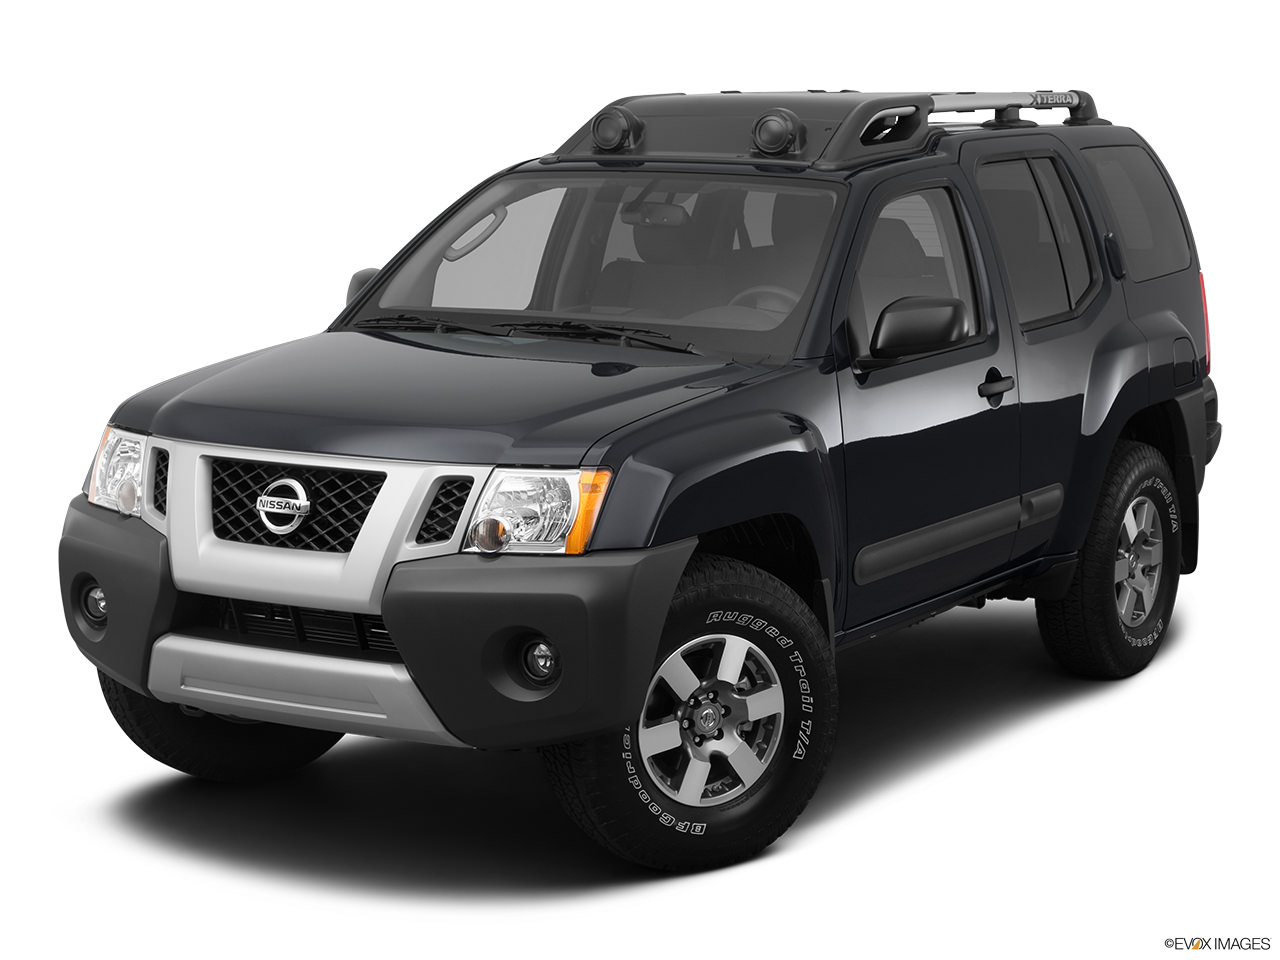 a buyer s guide to the 2012 nissan xterra yourmechanic advice rh yourmechanic com 2003 Nissan Xterra Nissan Pathfinder